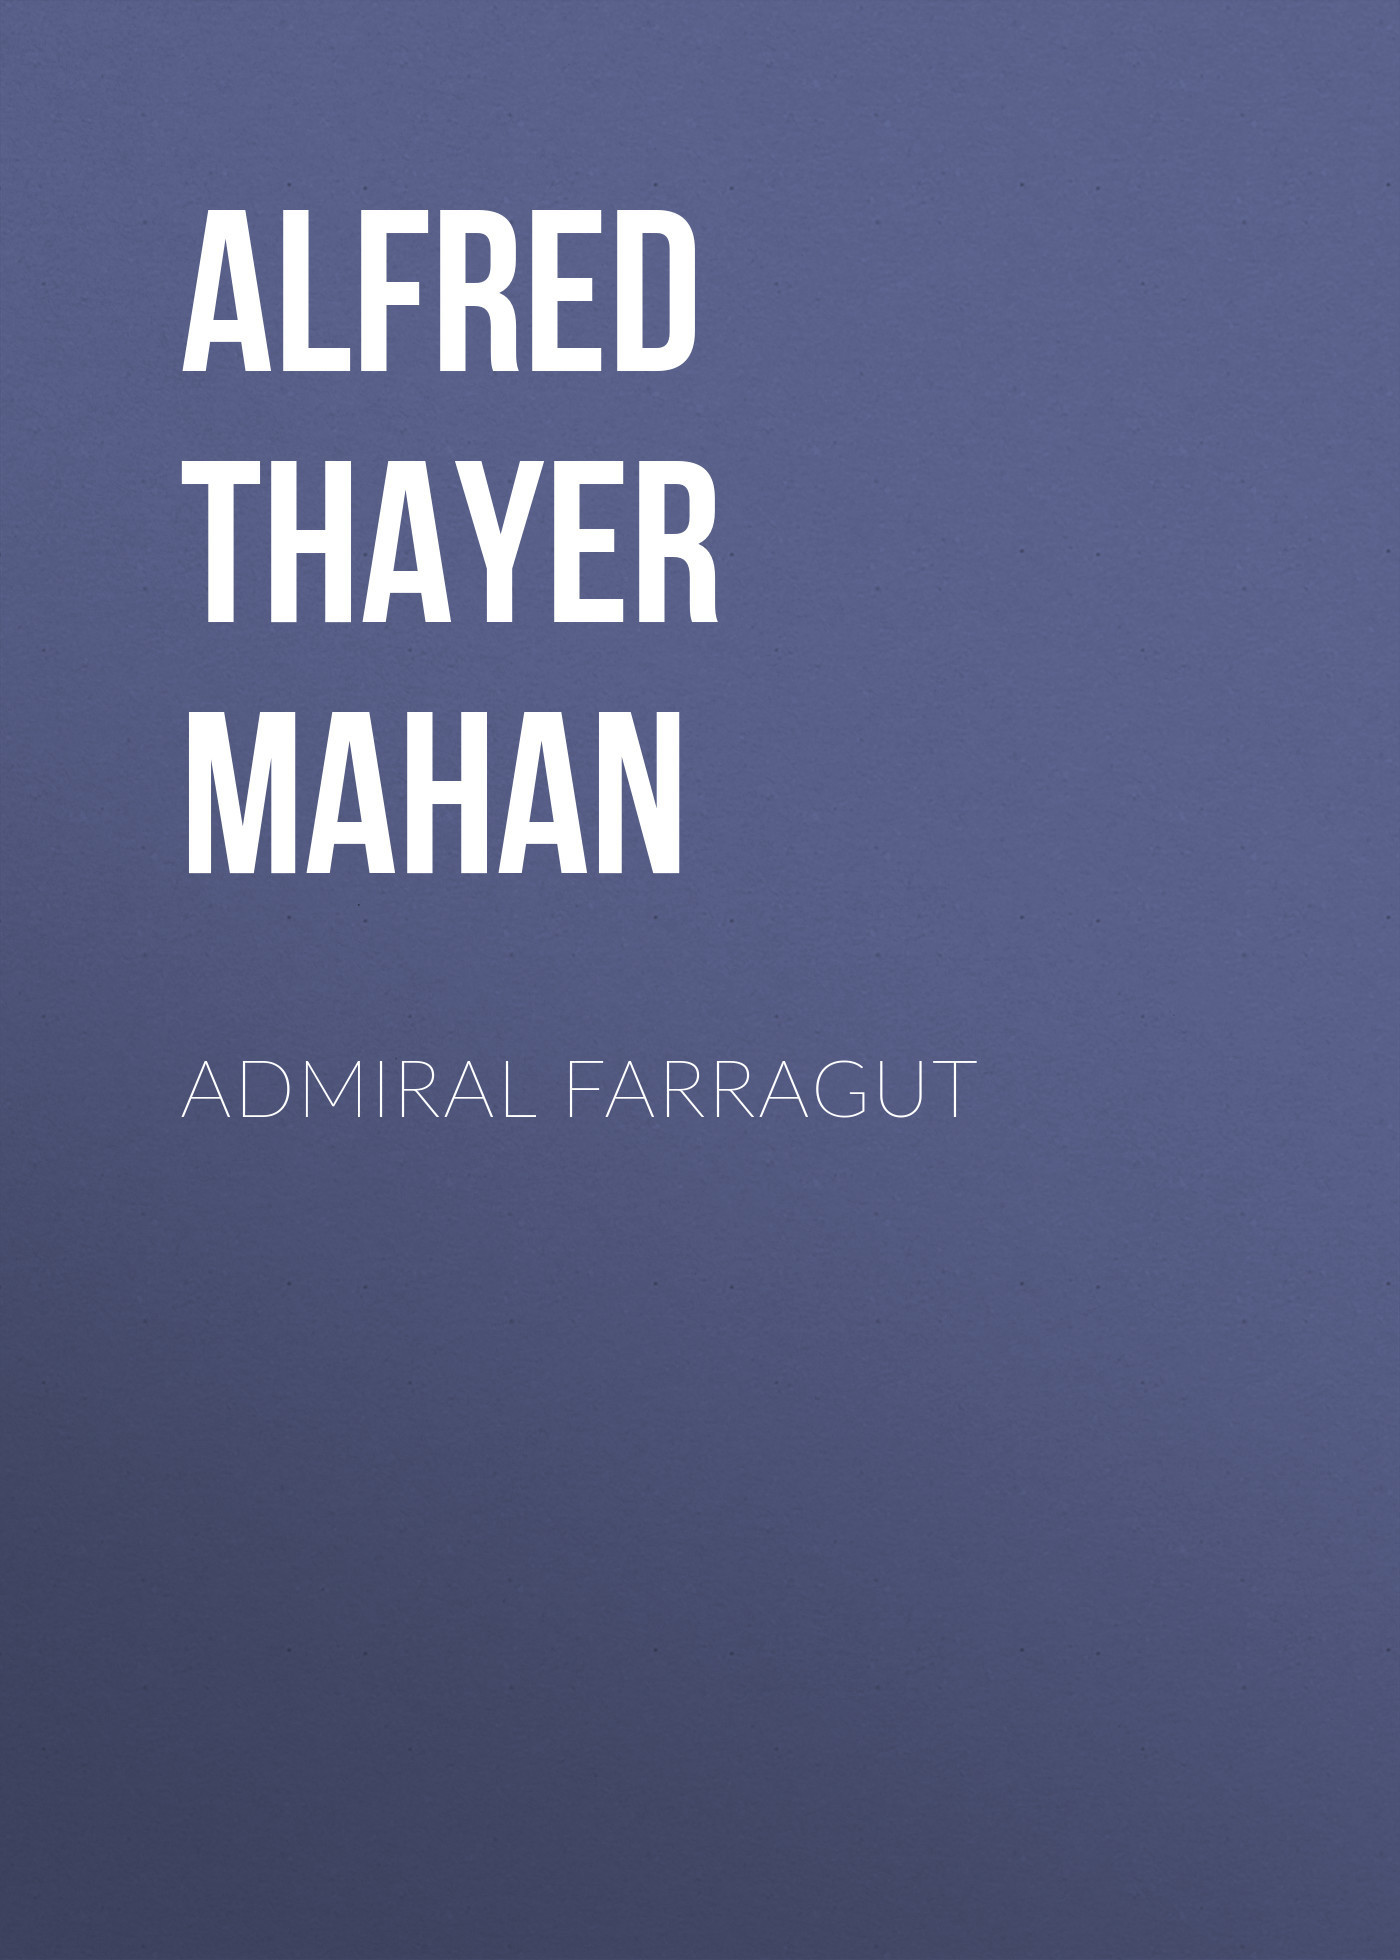 Alfred Thayer Mahan Admiral Farragut alfred thayer mahan the influence of sea power upon history 1660 1783